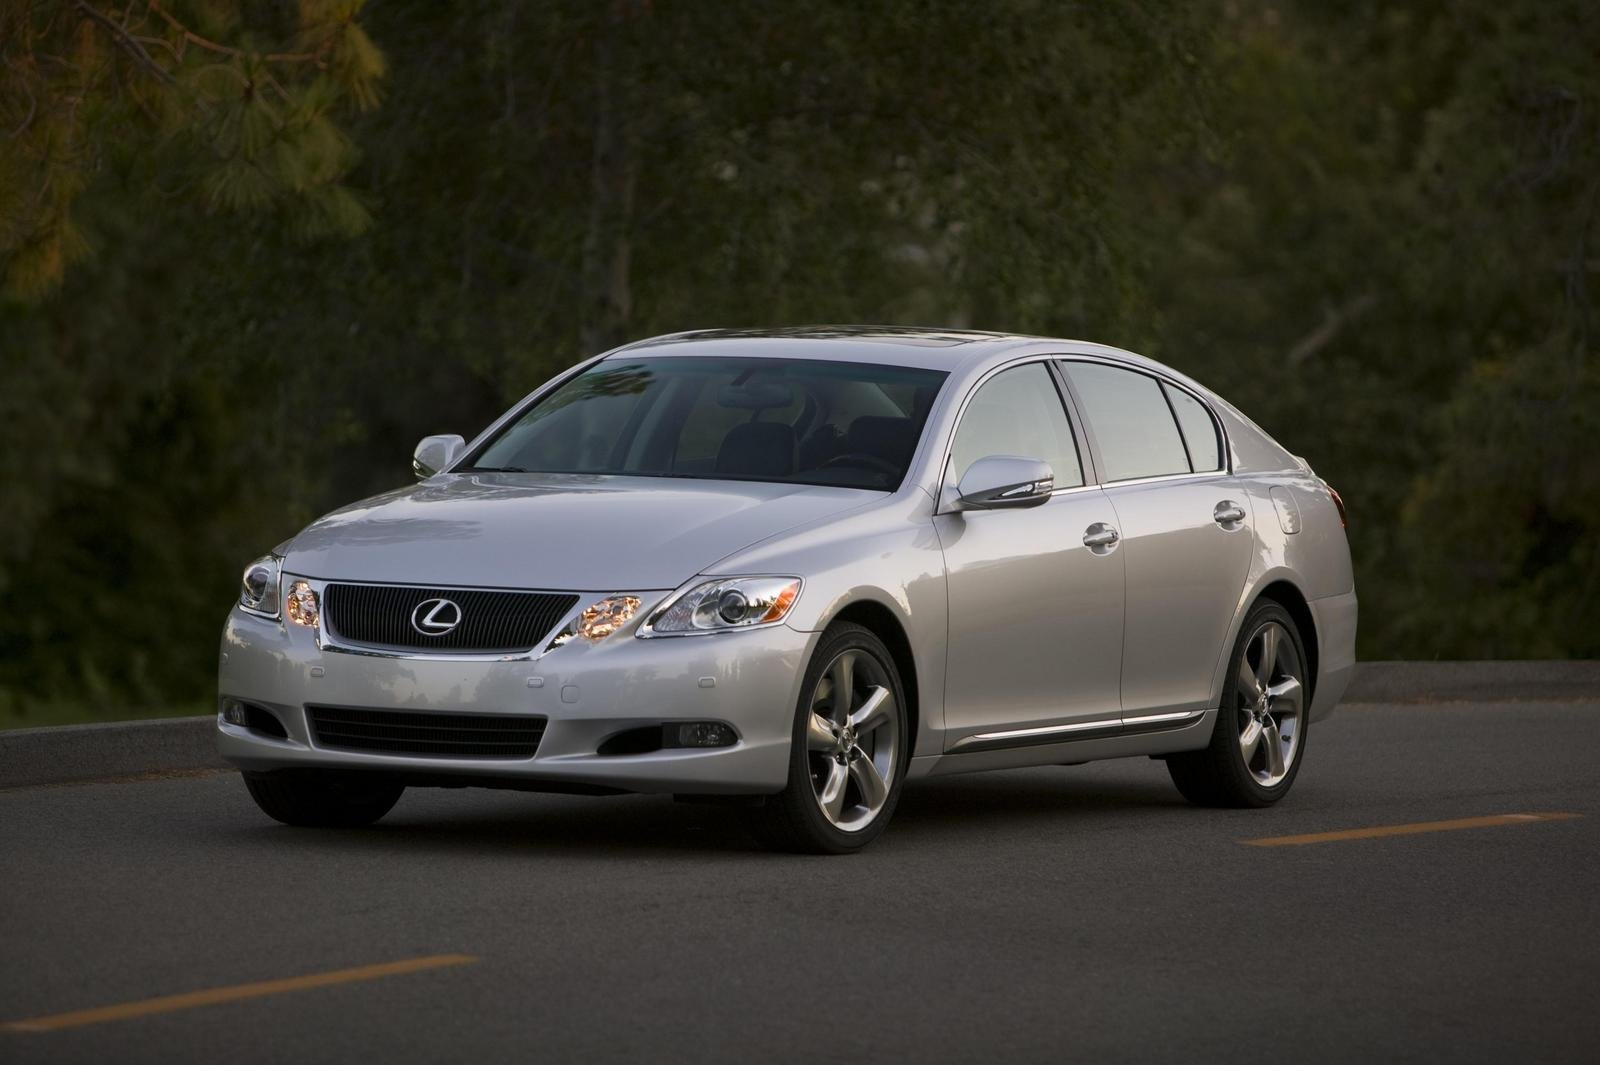 2008 lexus gs460 review top speed. Black Bedroom Furniture Sets. Home Design Ideas